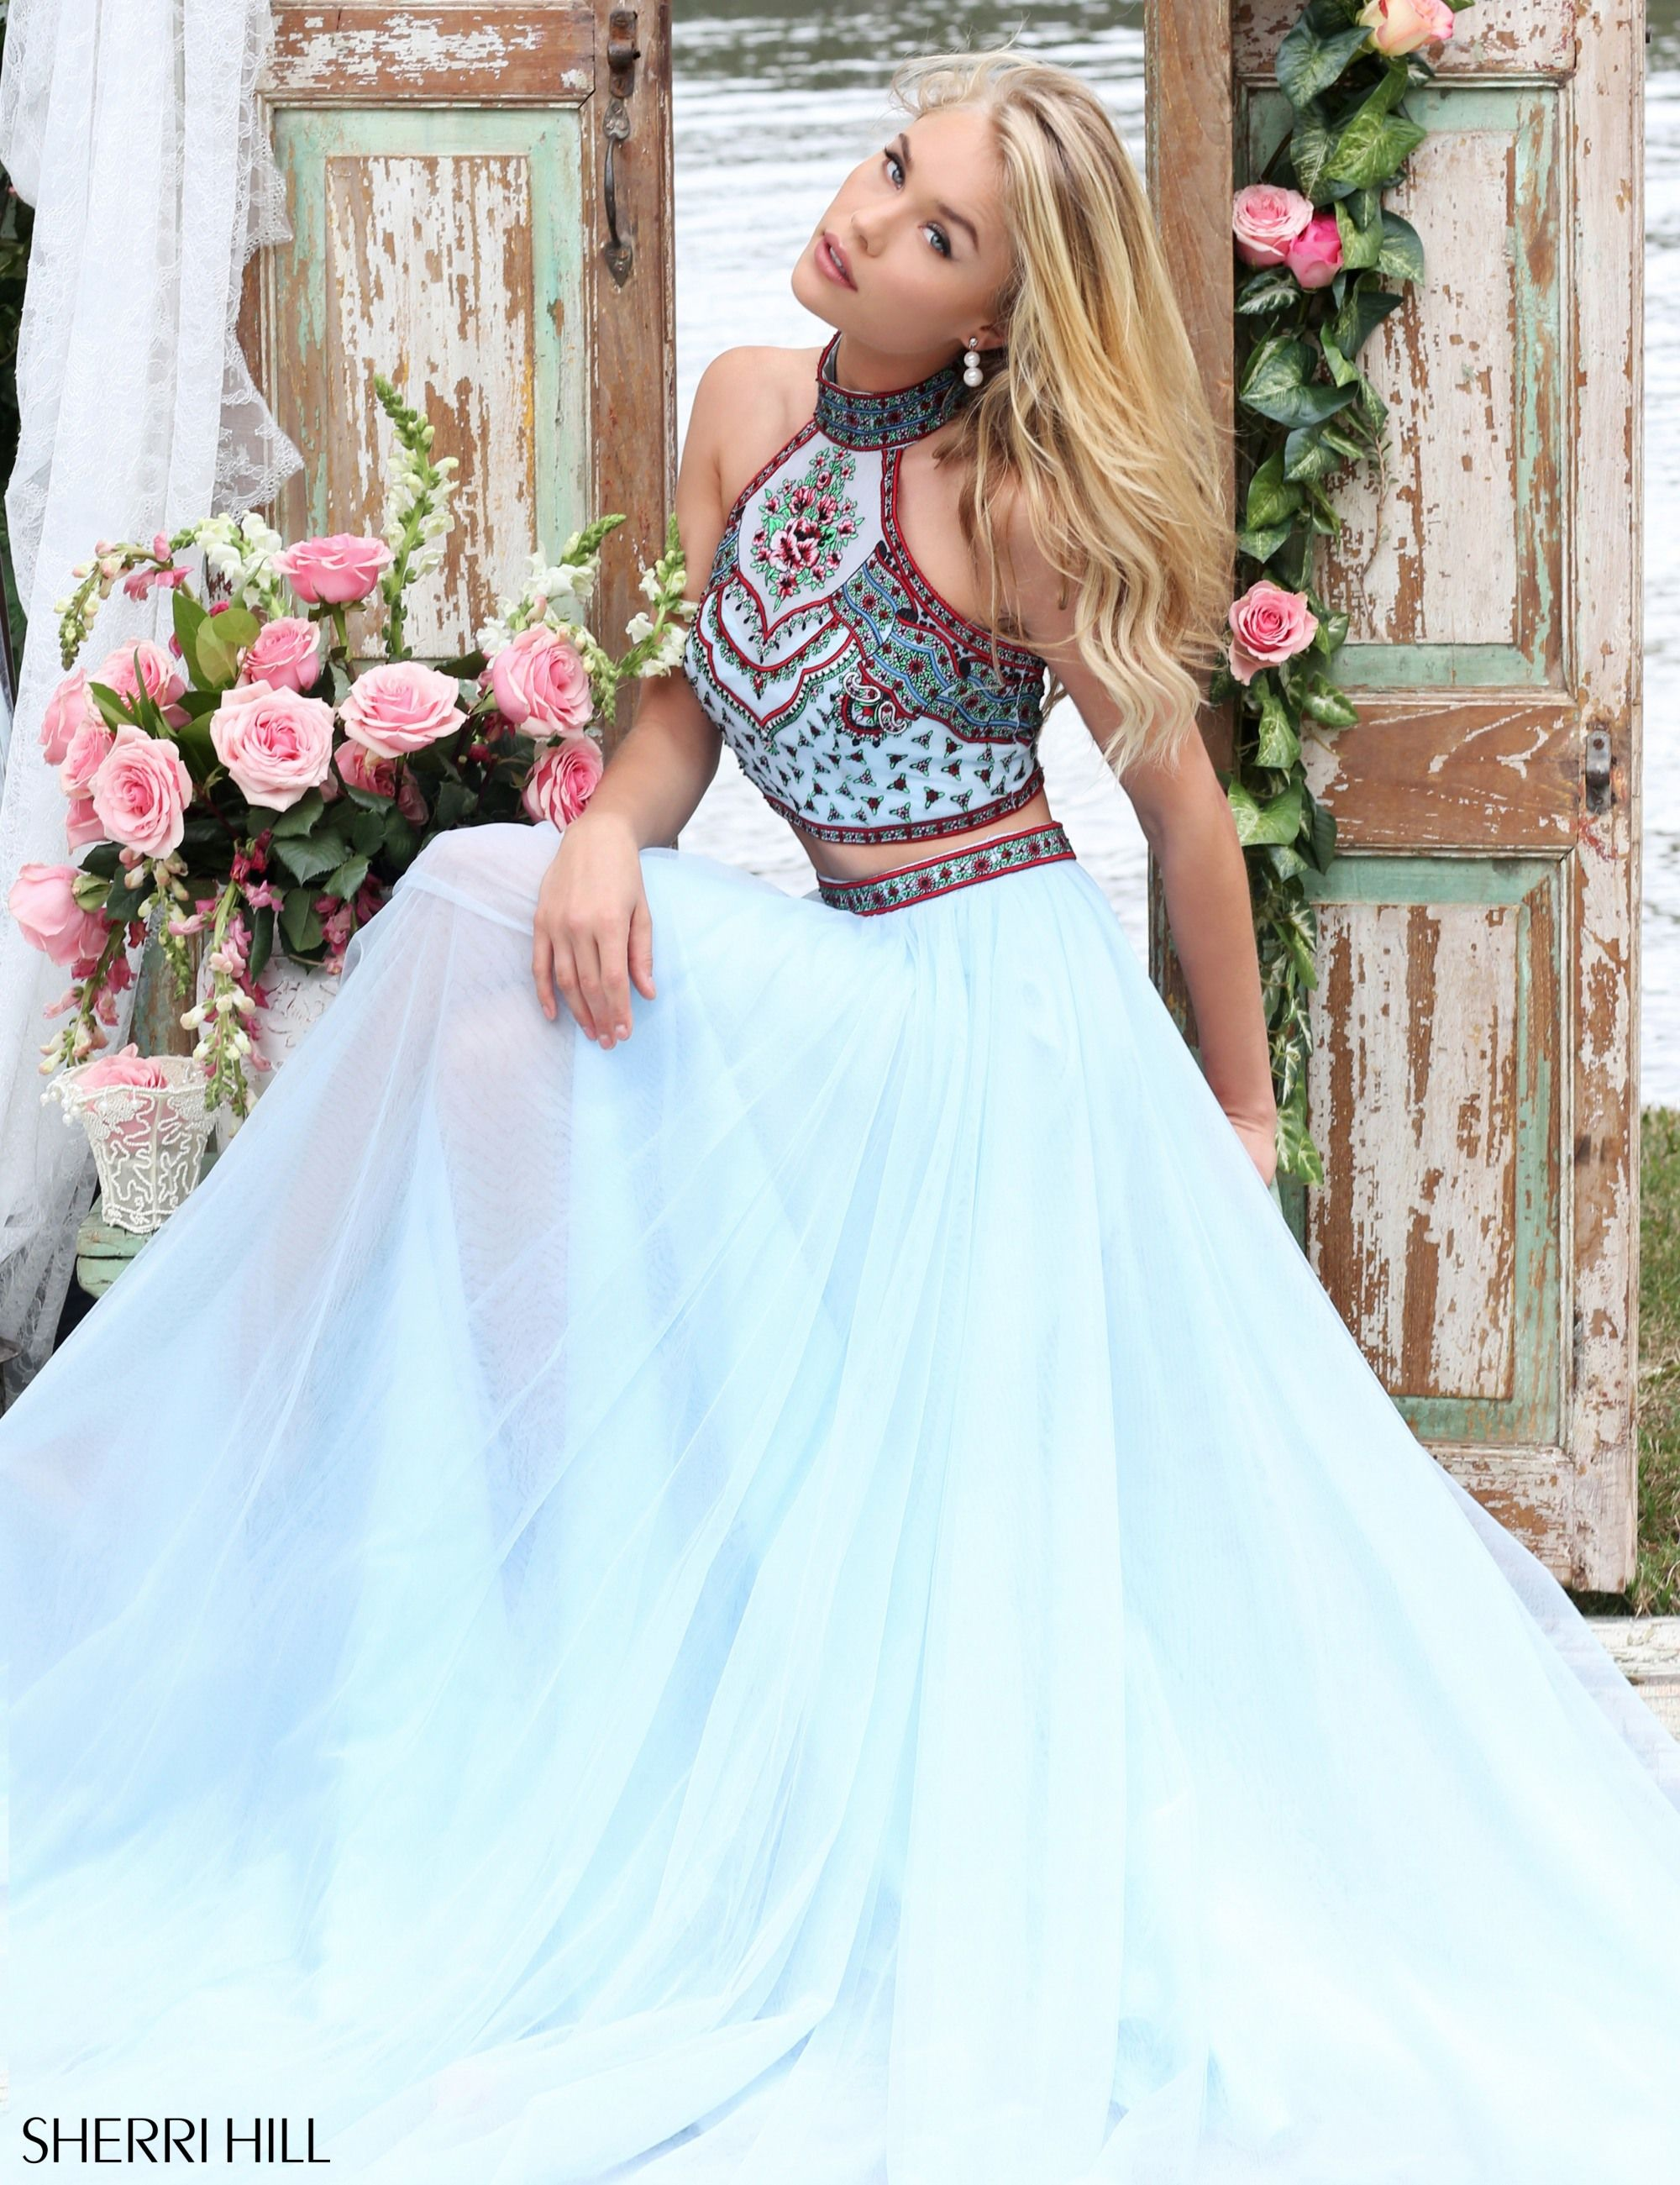 ec42f3e8ce599 Utah Prom Dresses Ypsilon Dresses 2-piece Sherri Hill Blue Dress Halter top